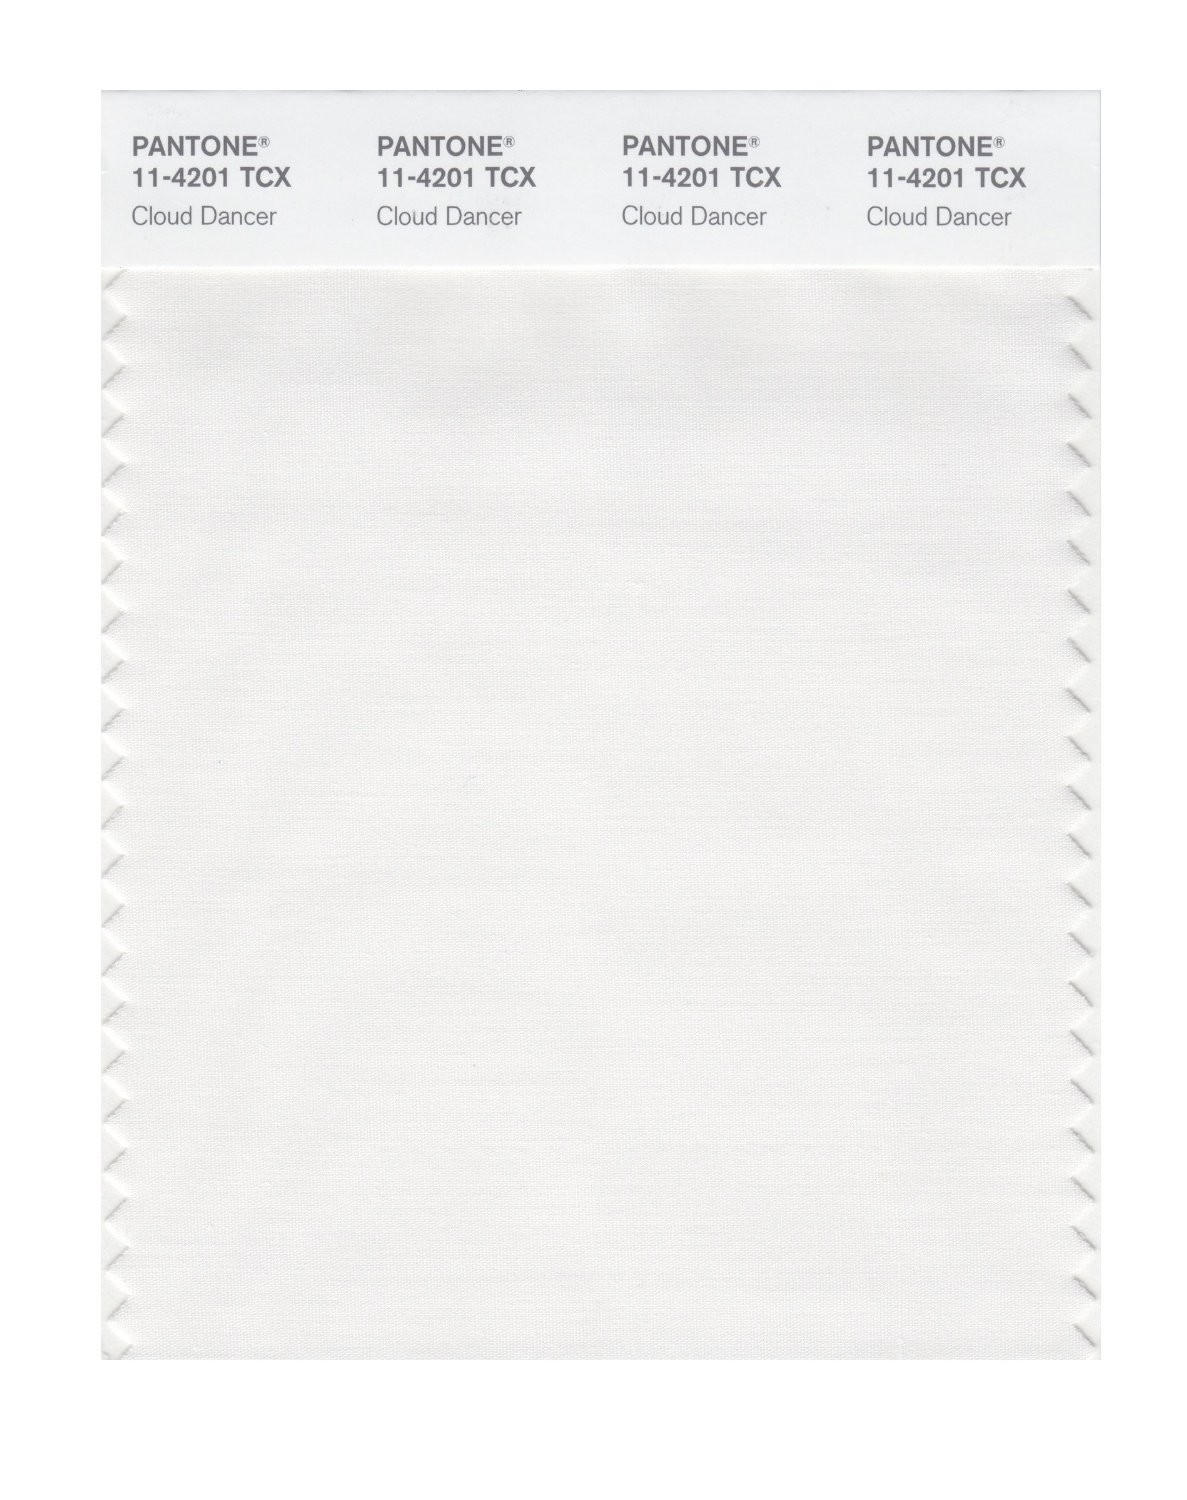 Pantone 11-4201 TCX Swatch Card Cloud Dancer